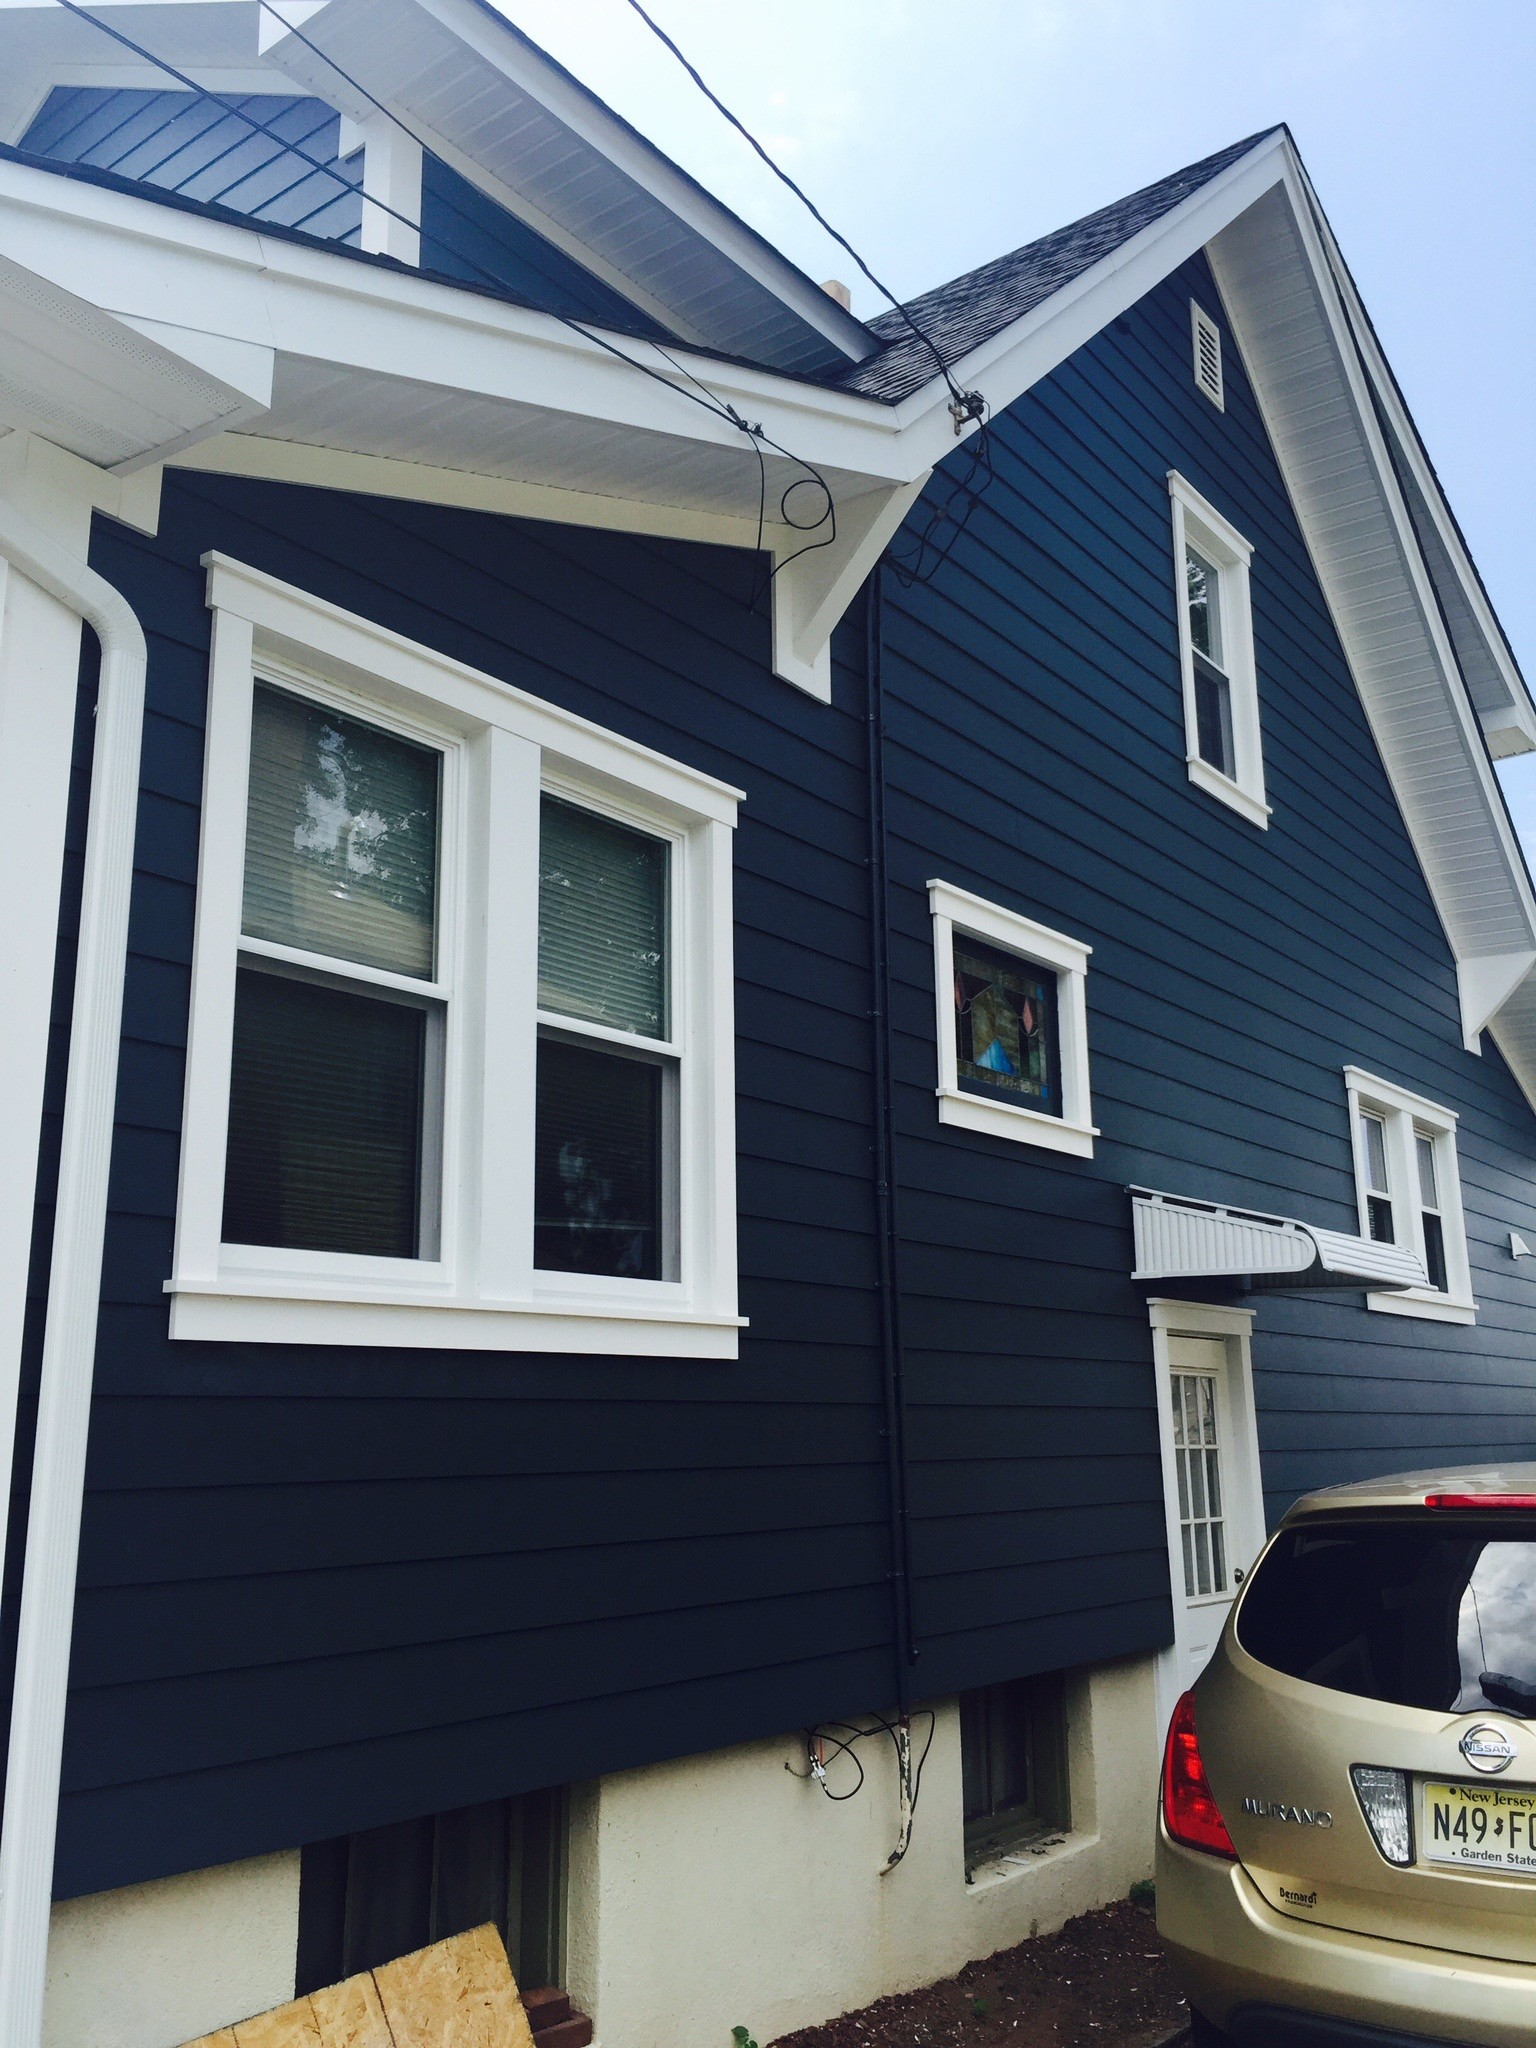 Union City Nj Crane Insulated Vinyl Siding 973 487 3704